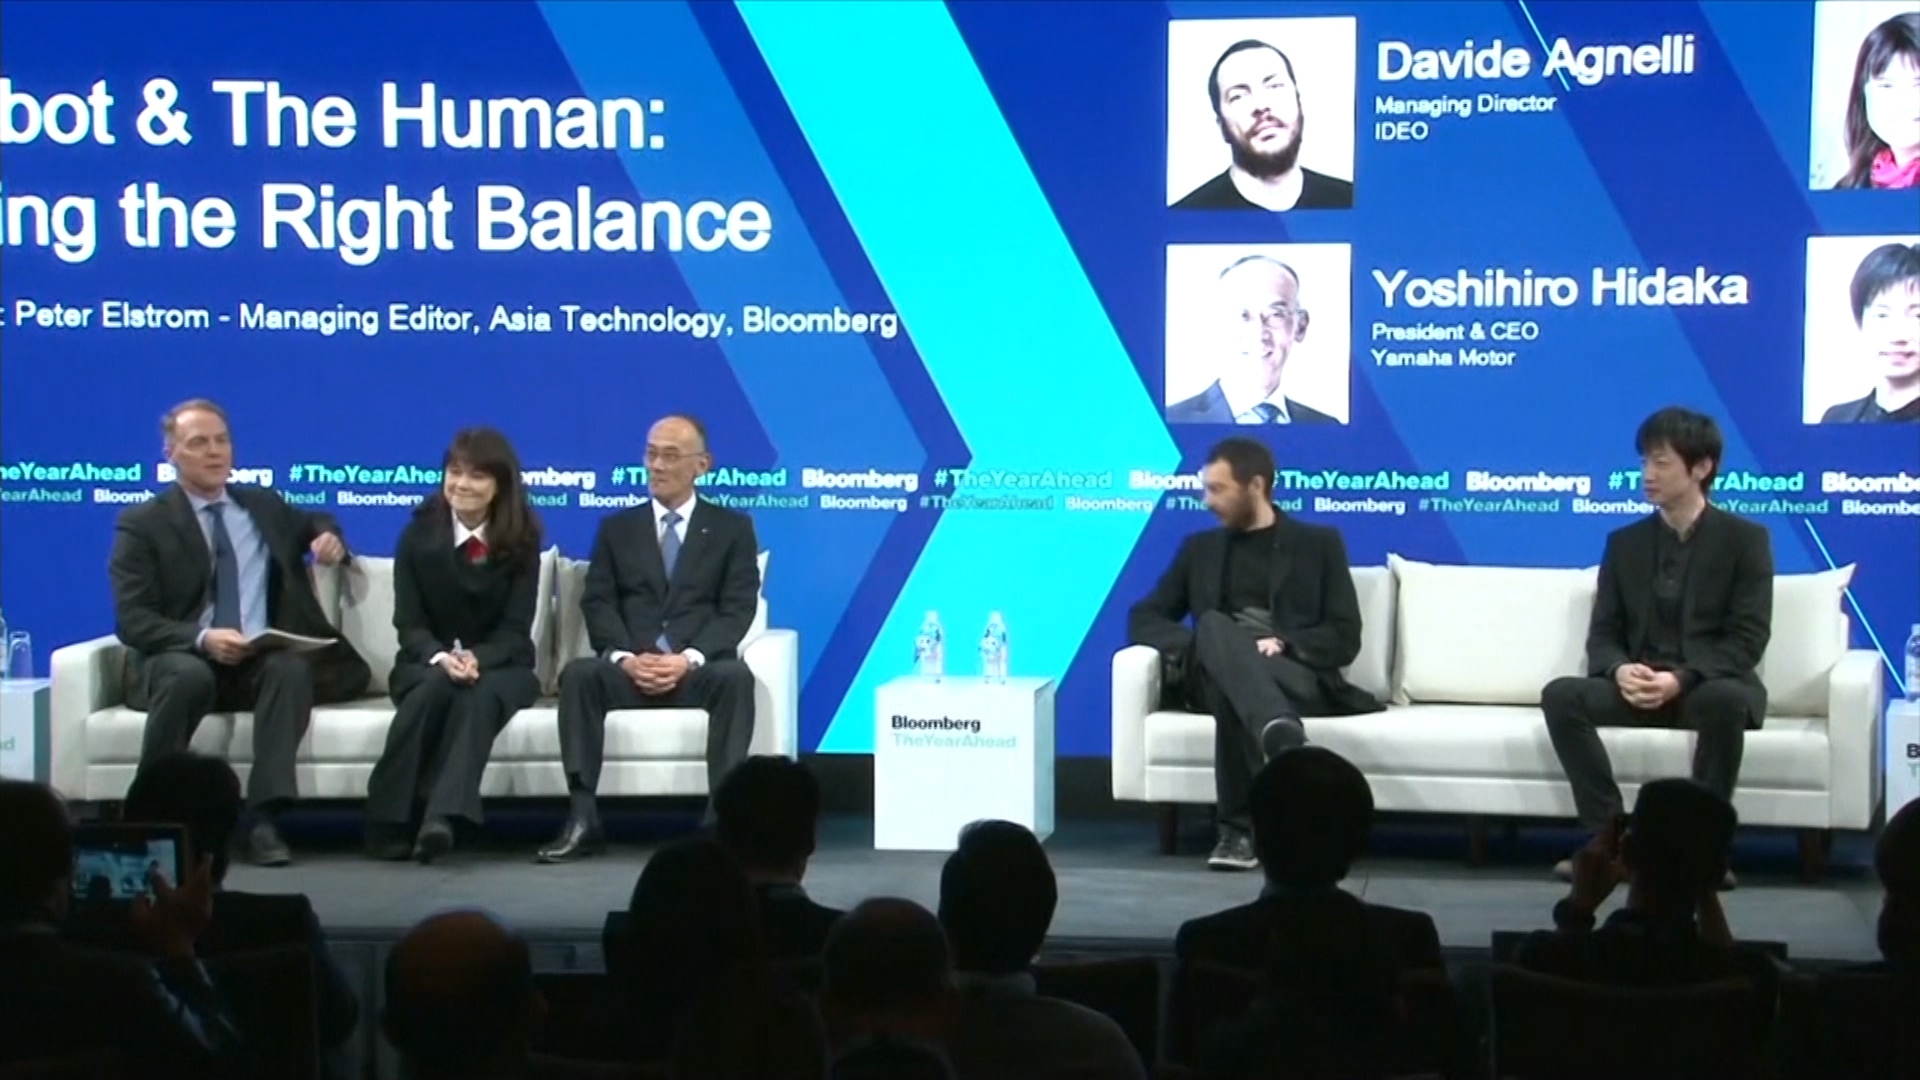 The Robot & The Human: Creating the Right Balance